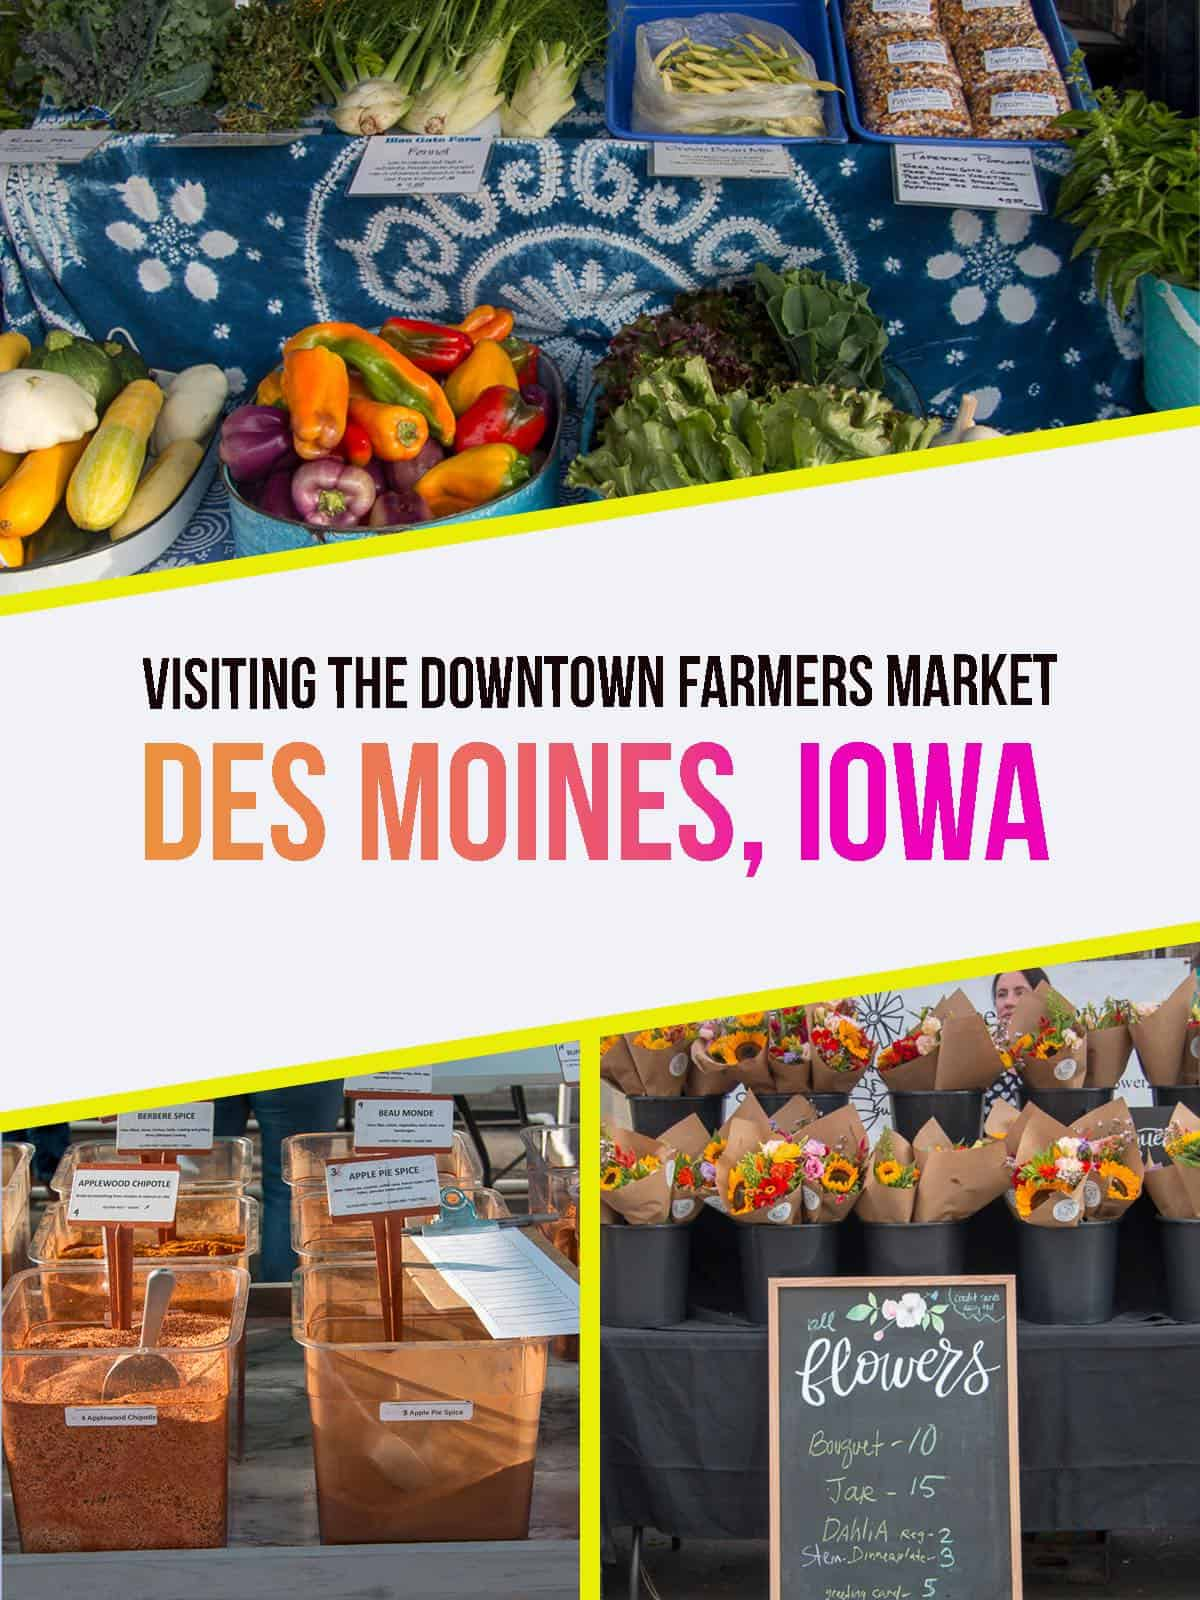 Visiting the Des Moines Iowa Farmers Market